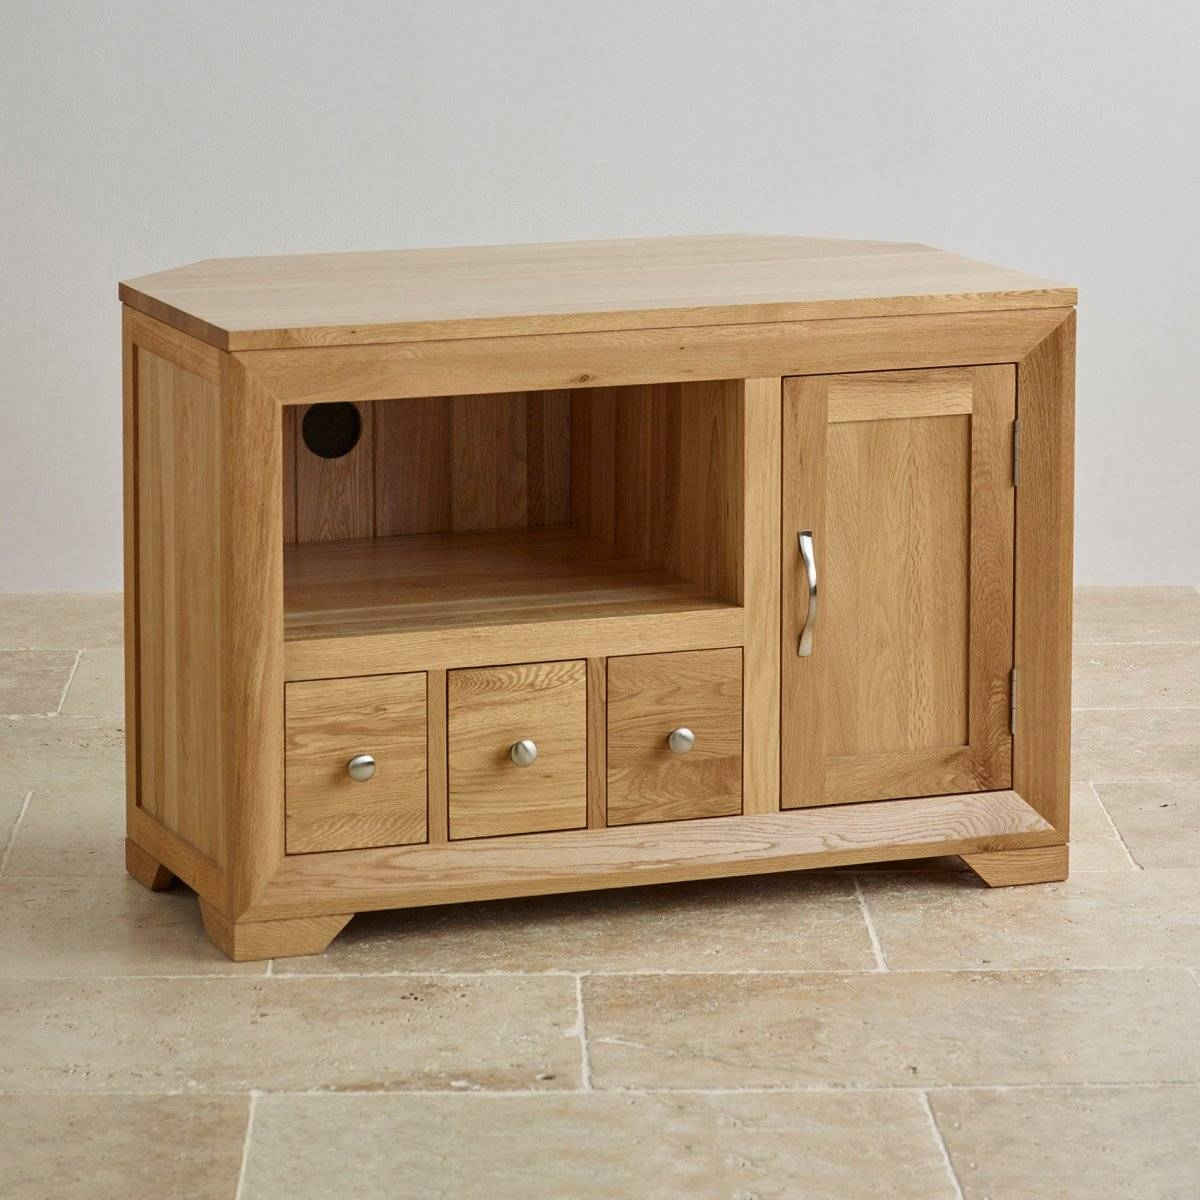 Bevel Small Corner Tv Cabinet In Solid Oak | Oak Furniture Land Pertaining To Oak Tv Cabinets (View 14 of 15)